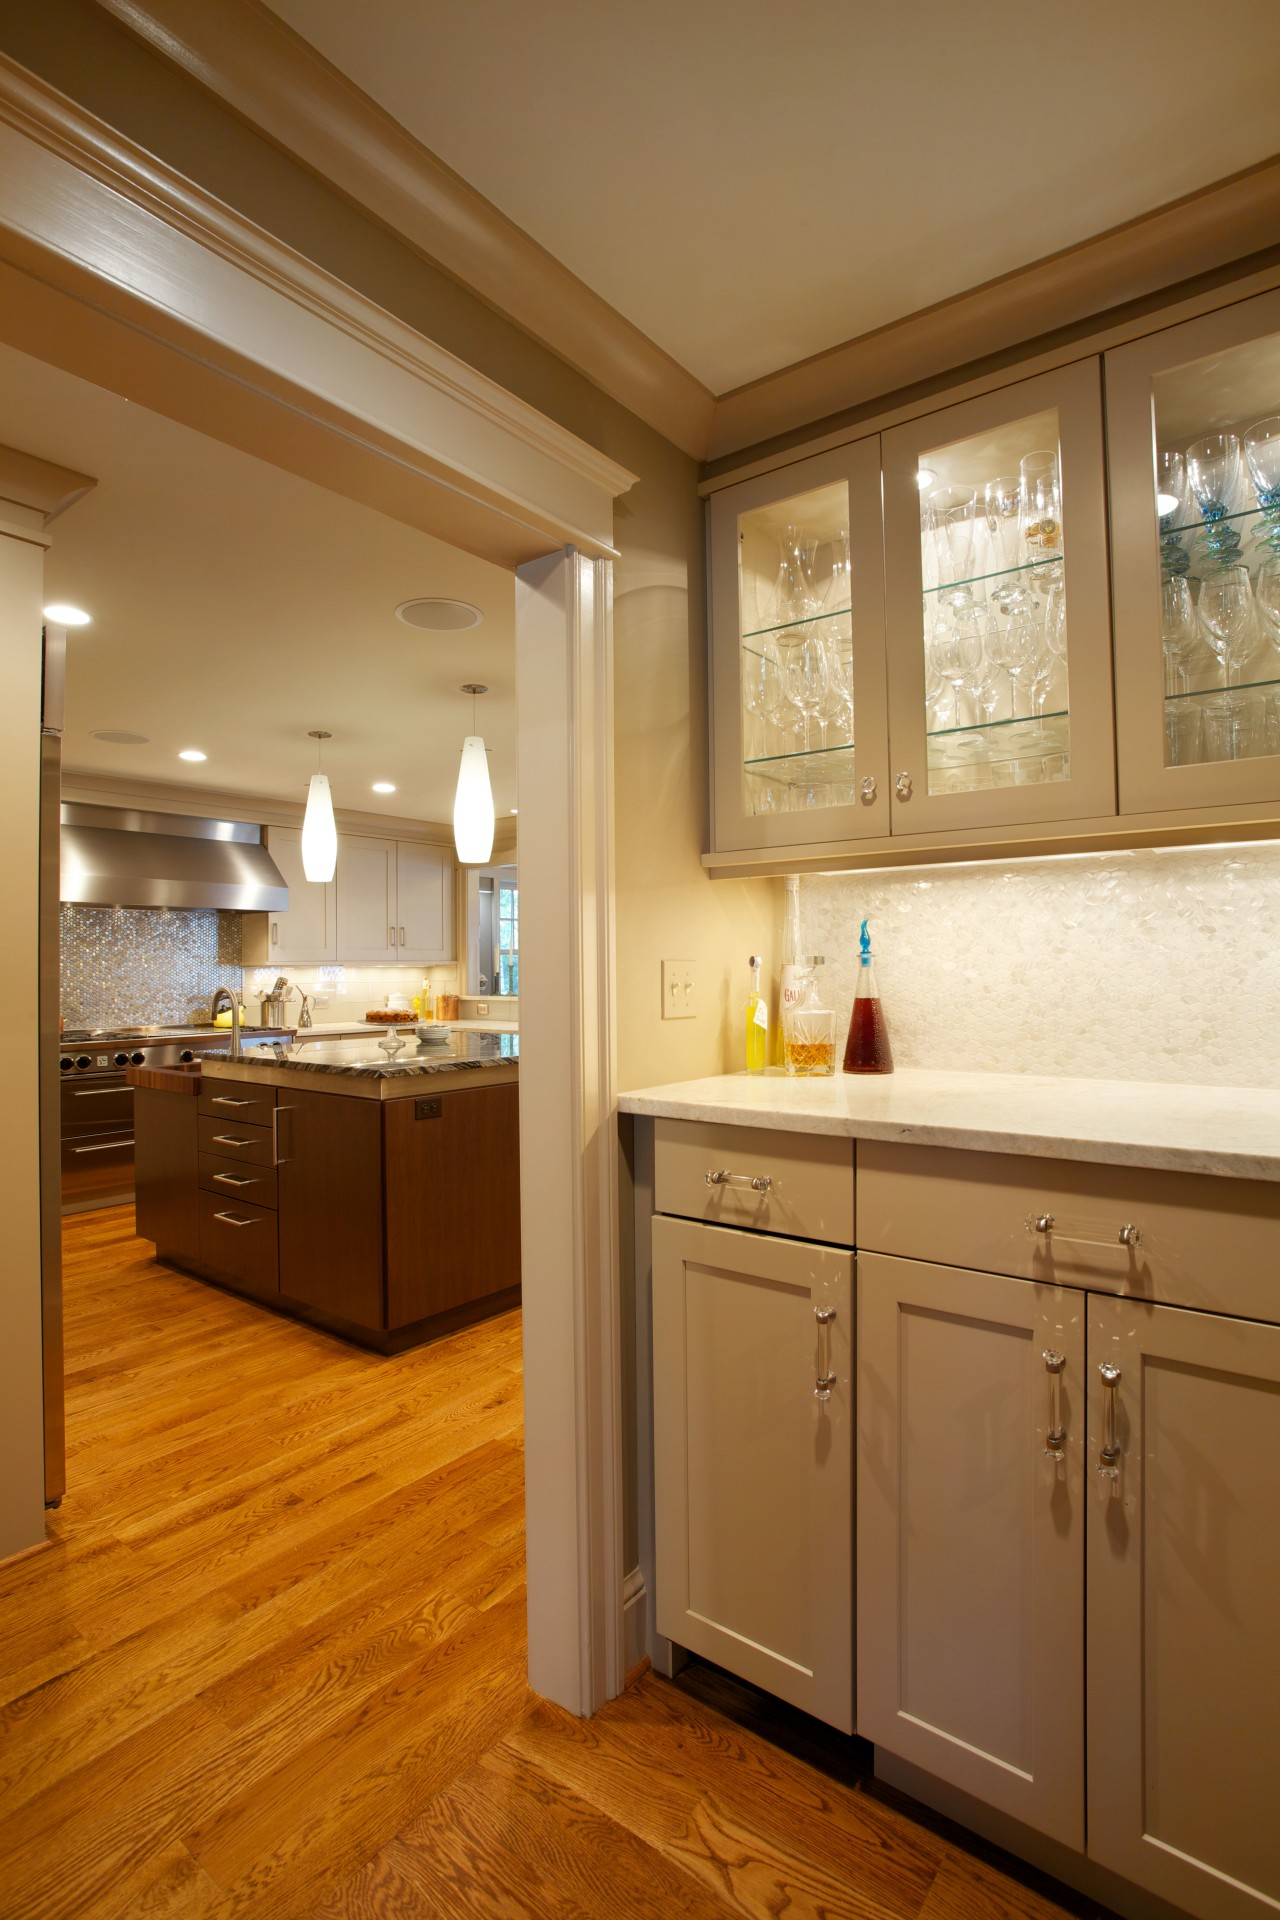 This butlers pantry stands between the dining room bathroom, cabinetry, ceiling, countertop, floor, home, interior design, kitchen, room, window, brown